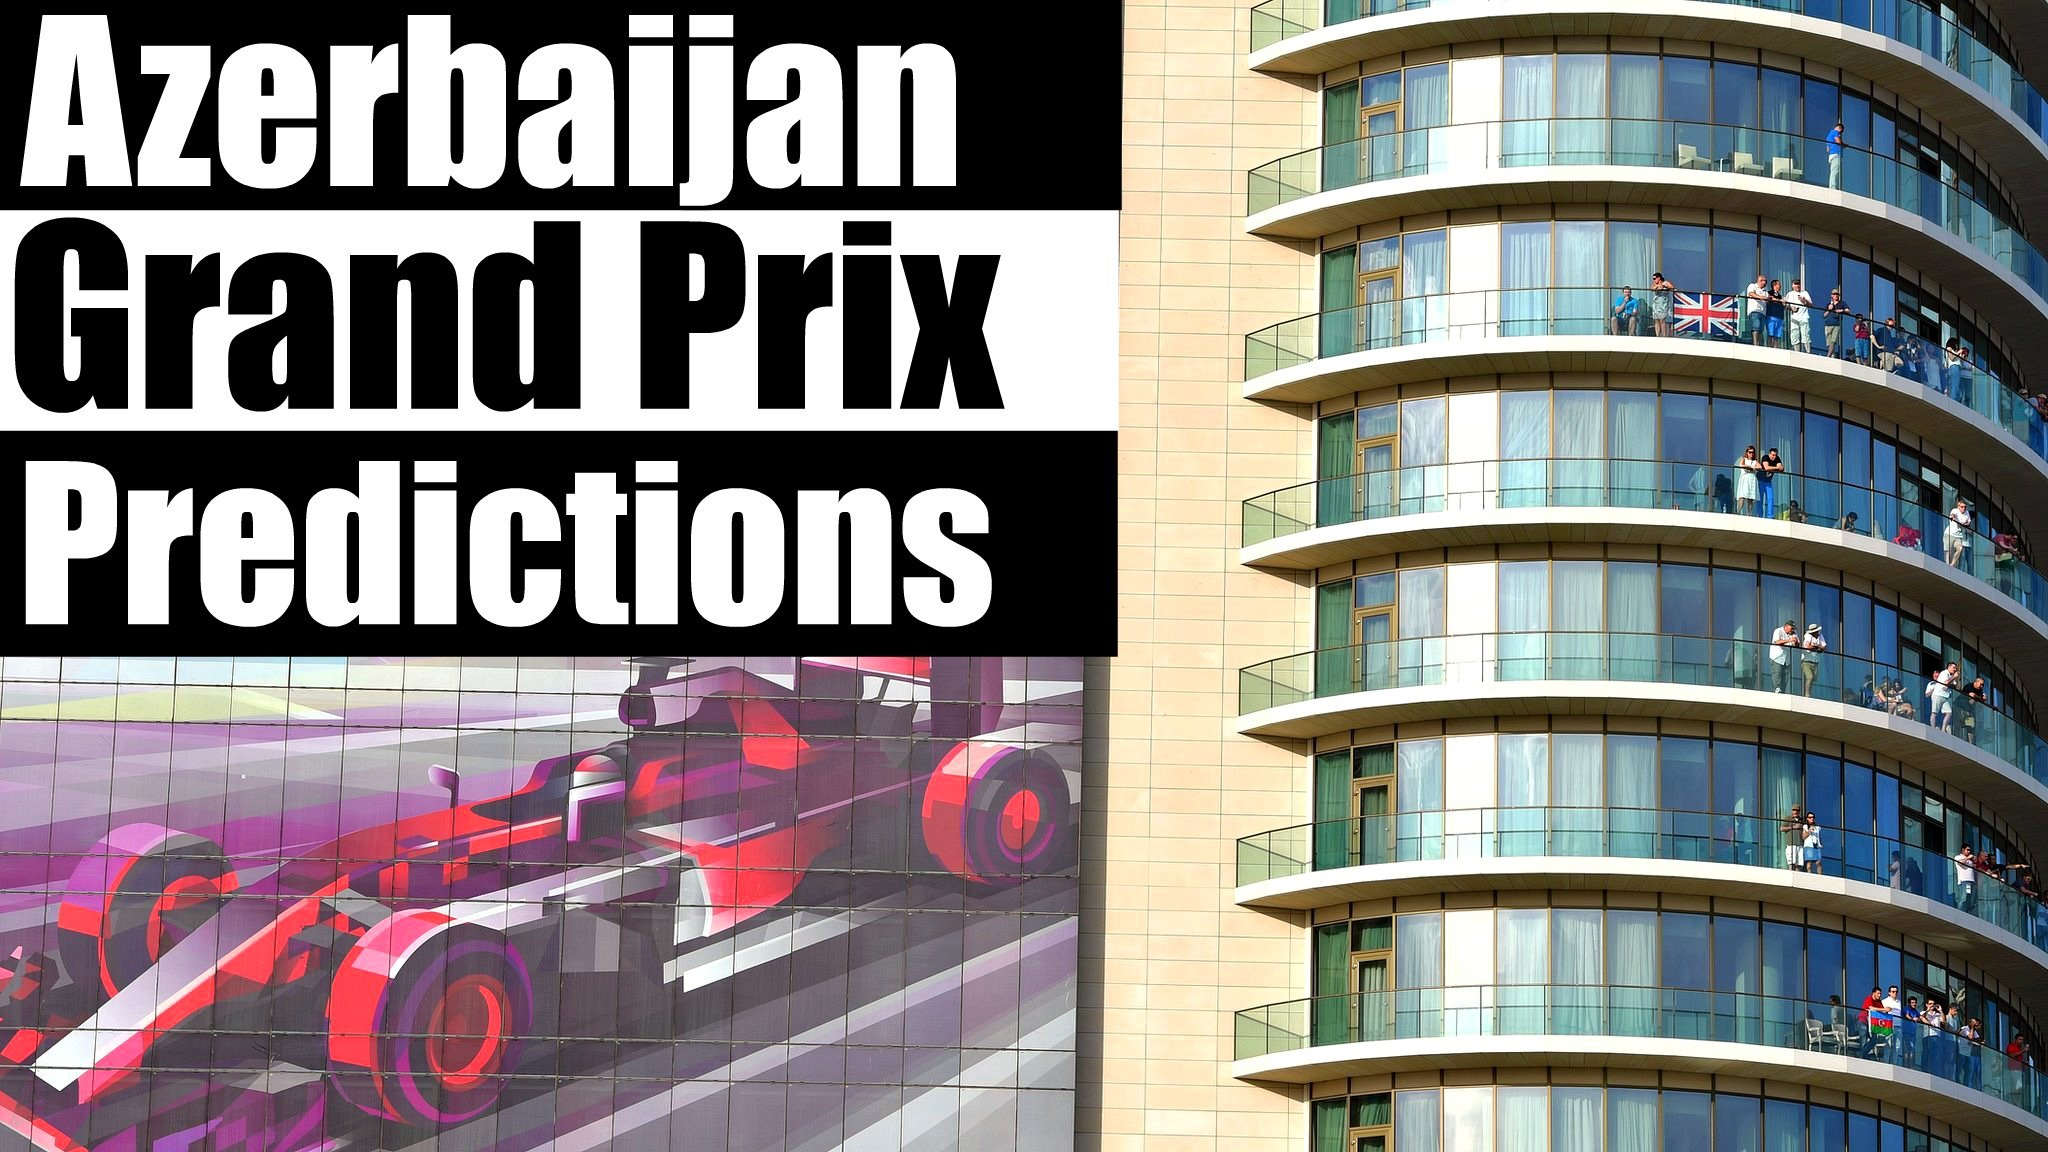 Azerbaijan Grand Prix: Predict who will top qualifying in Baku